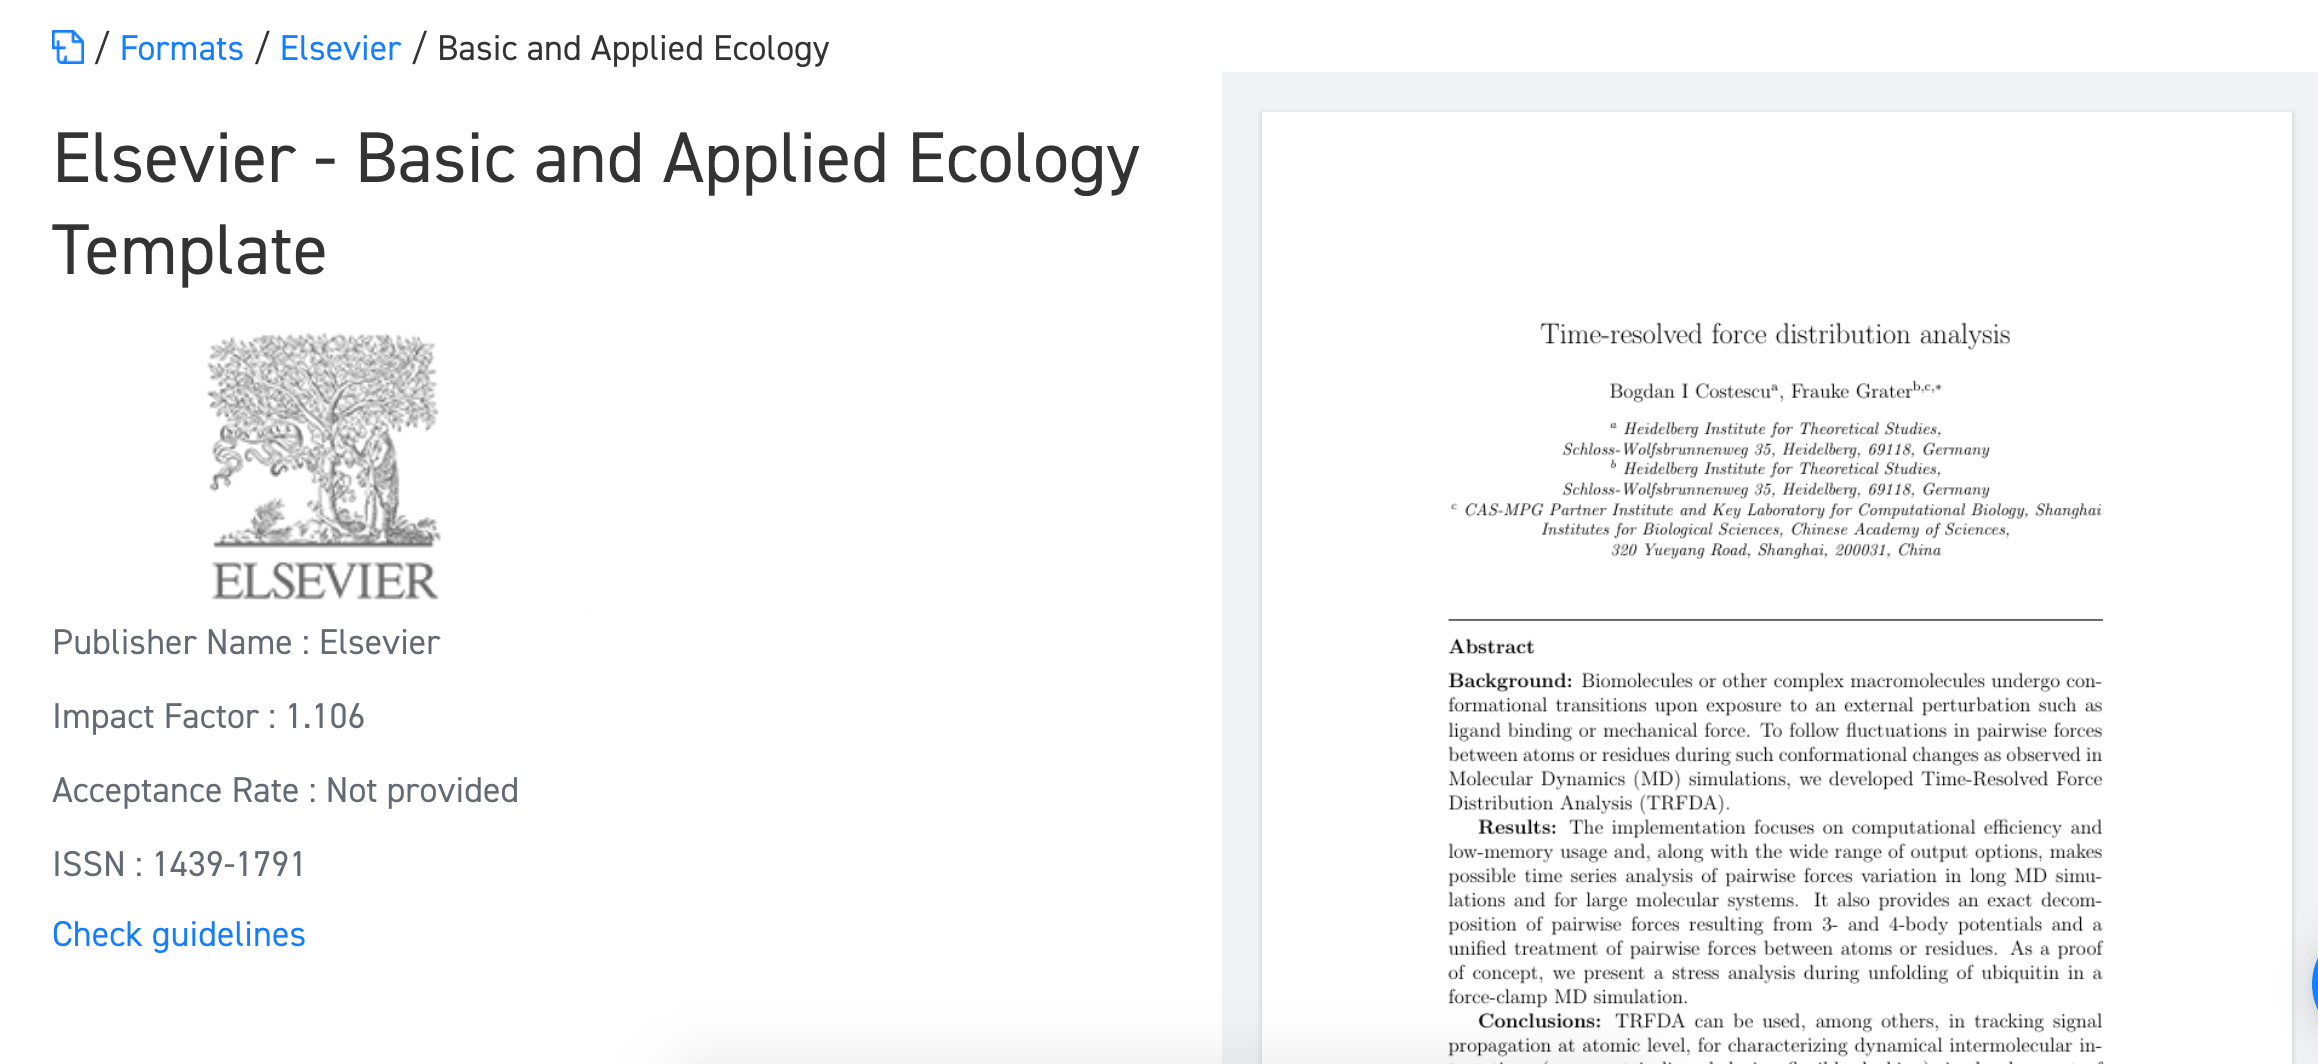 Where Can I Find The Word Template For Elsevier Journals For